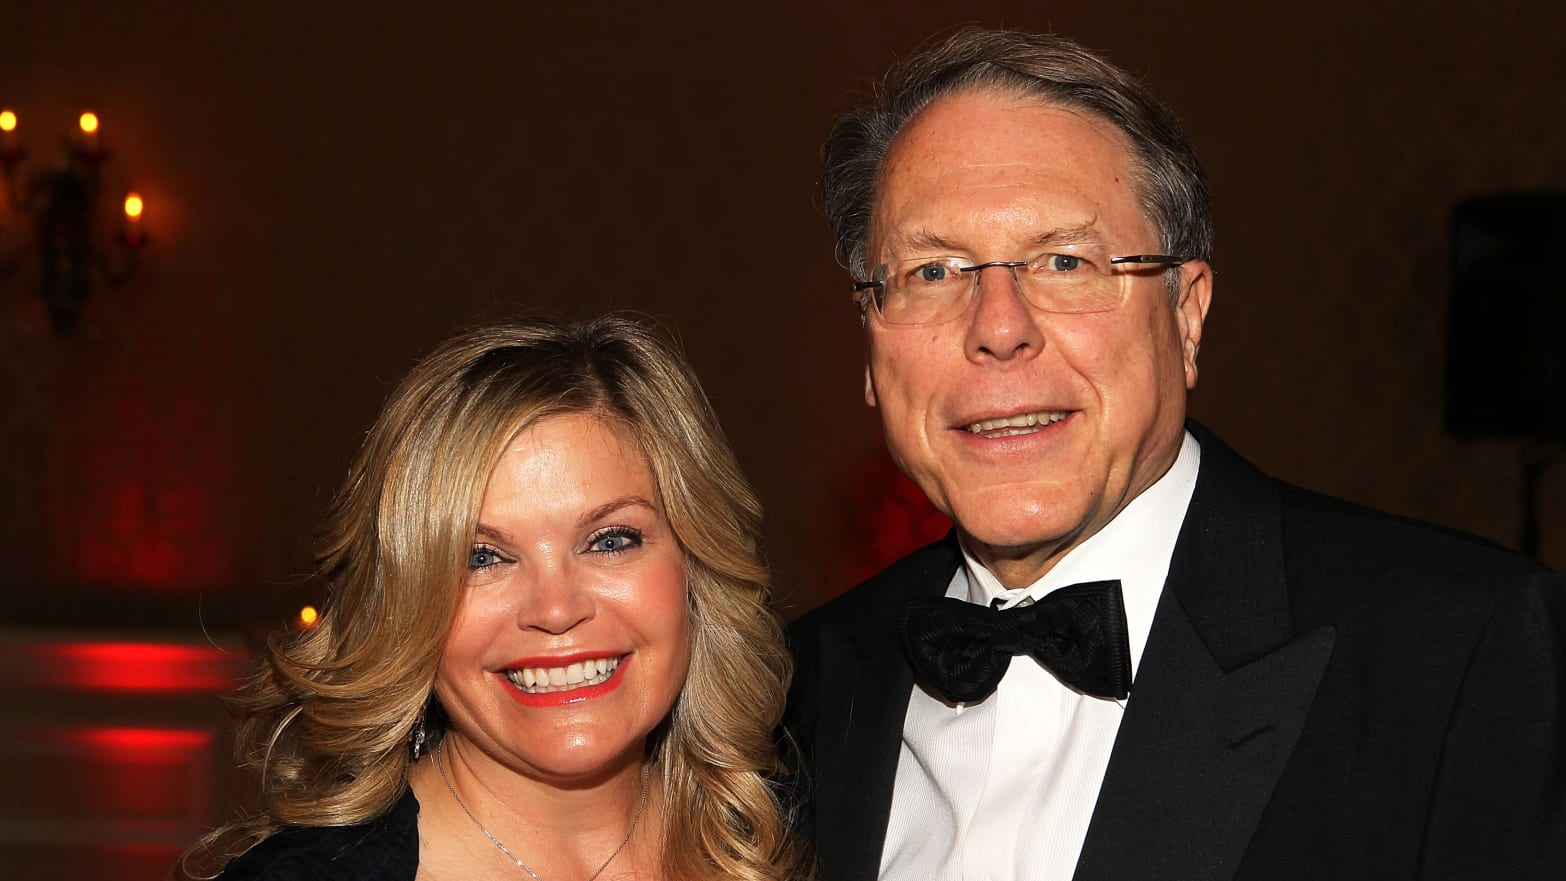 NRA Spent Tens of Thousands on Hair and Makeup for CEO Wayne LaPierre's Wife, Susan